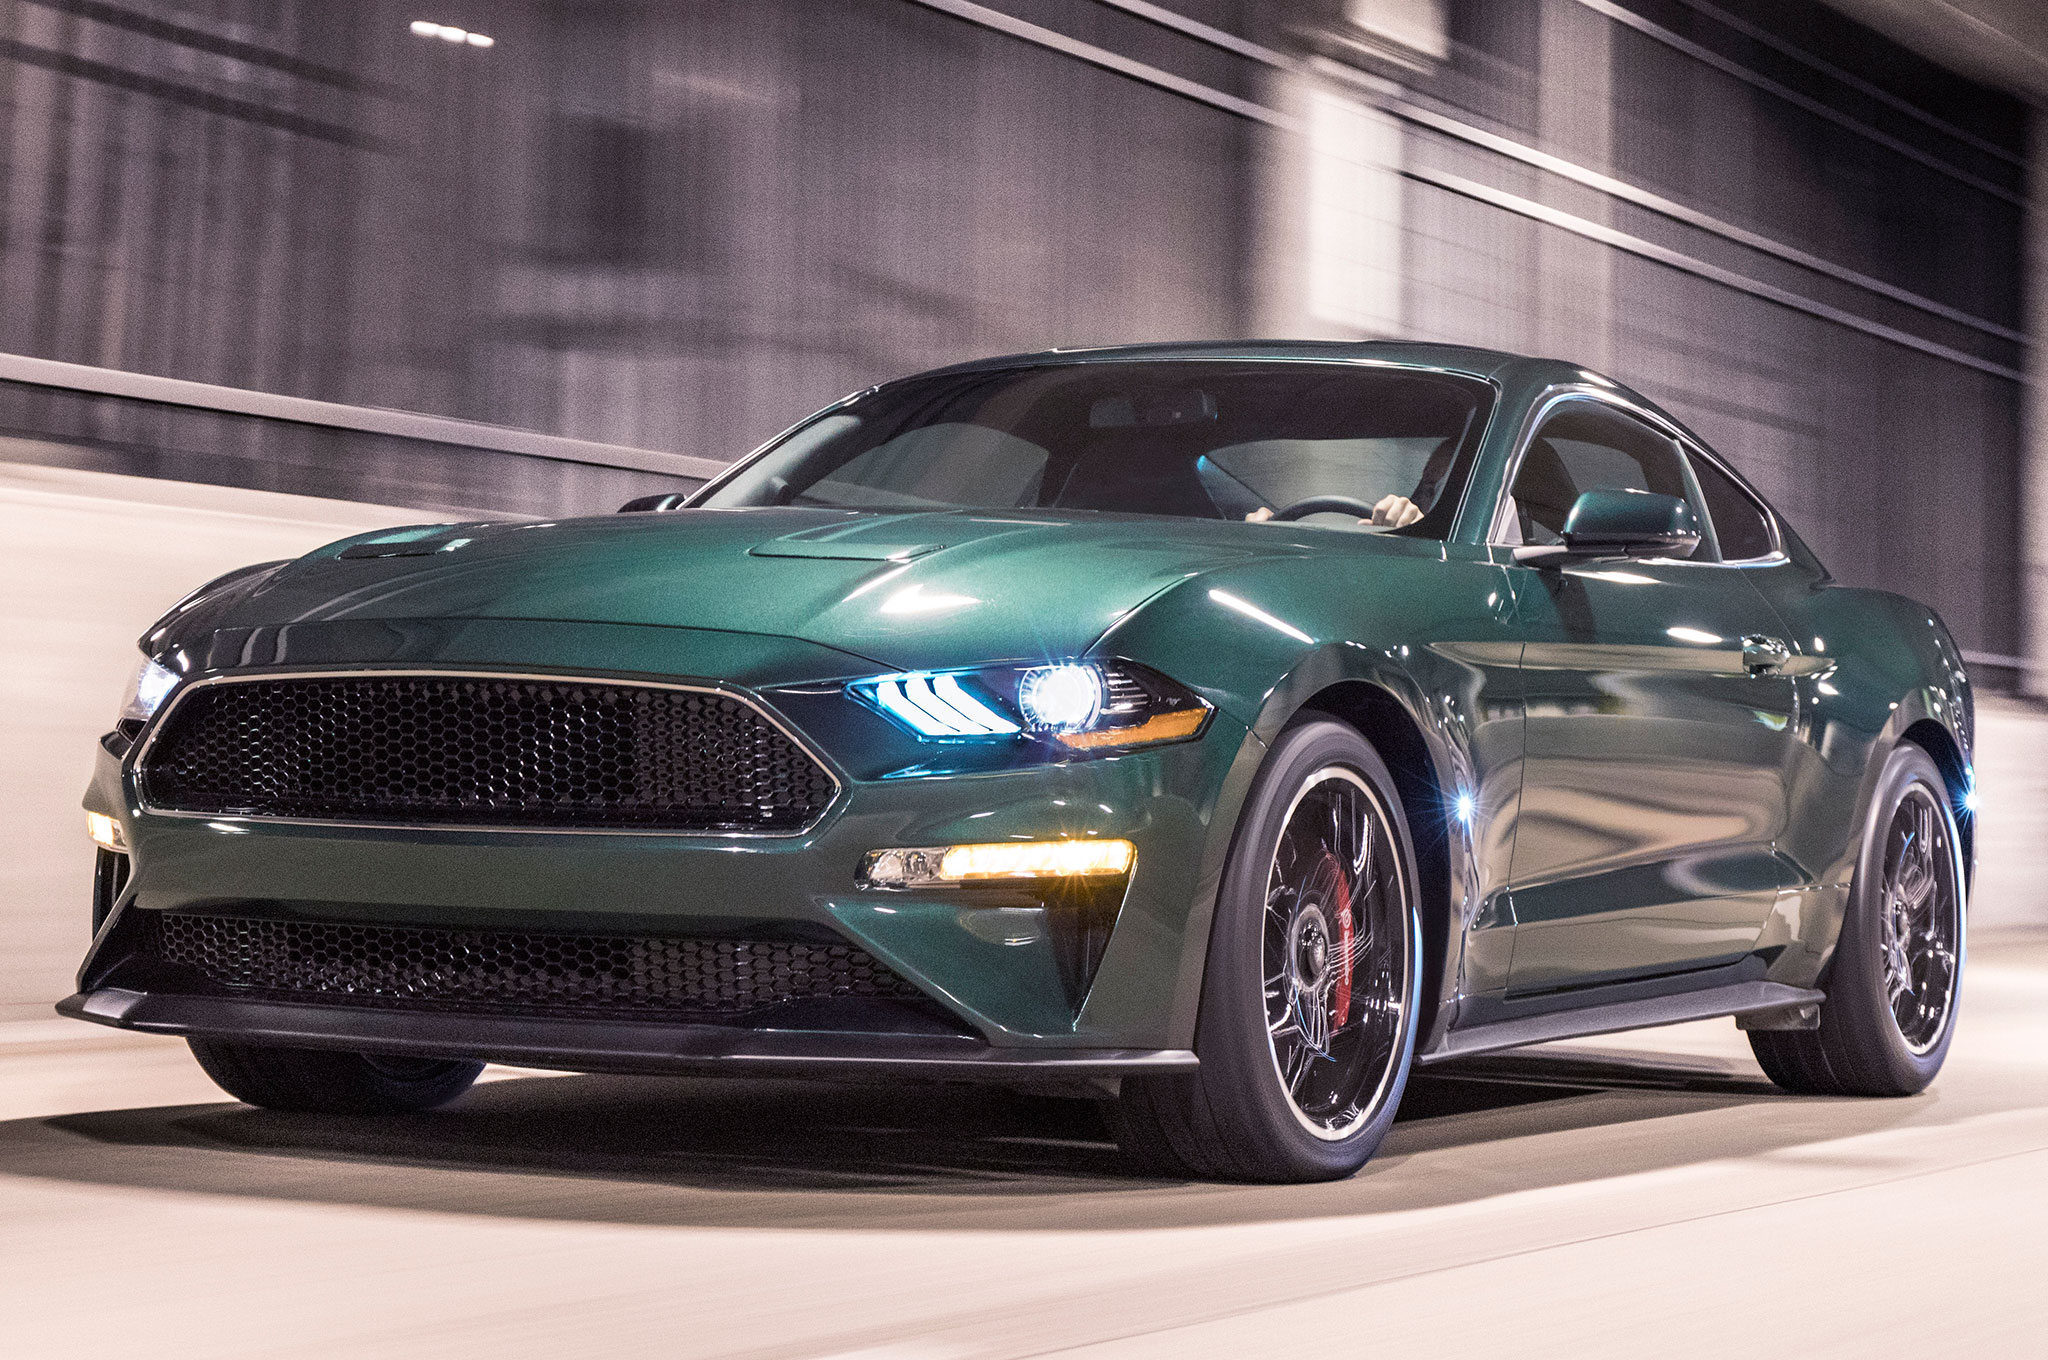 2019 Ford Mustang Bullitt Gets $47,495 Price Tag | Automobile Magazine